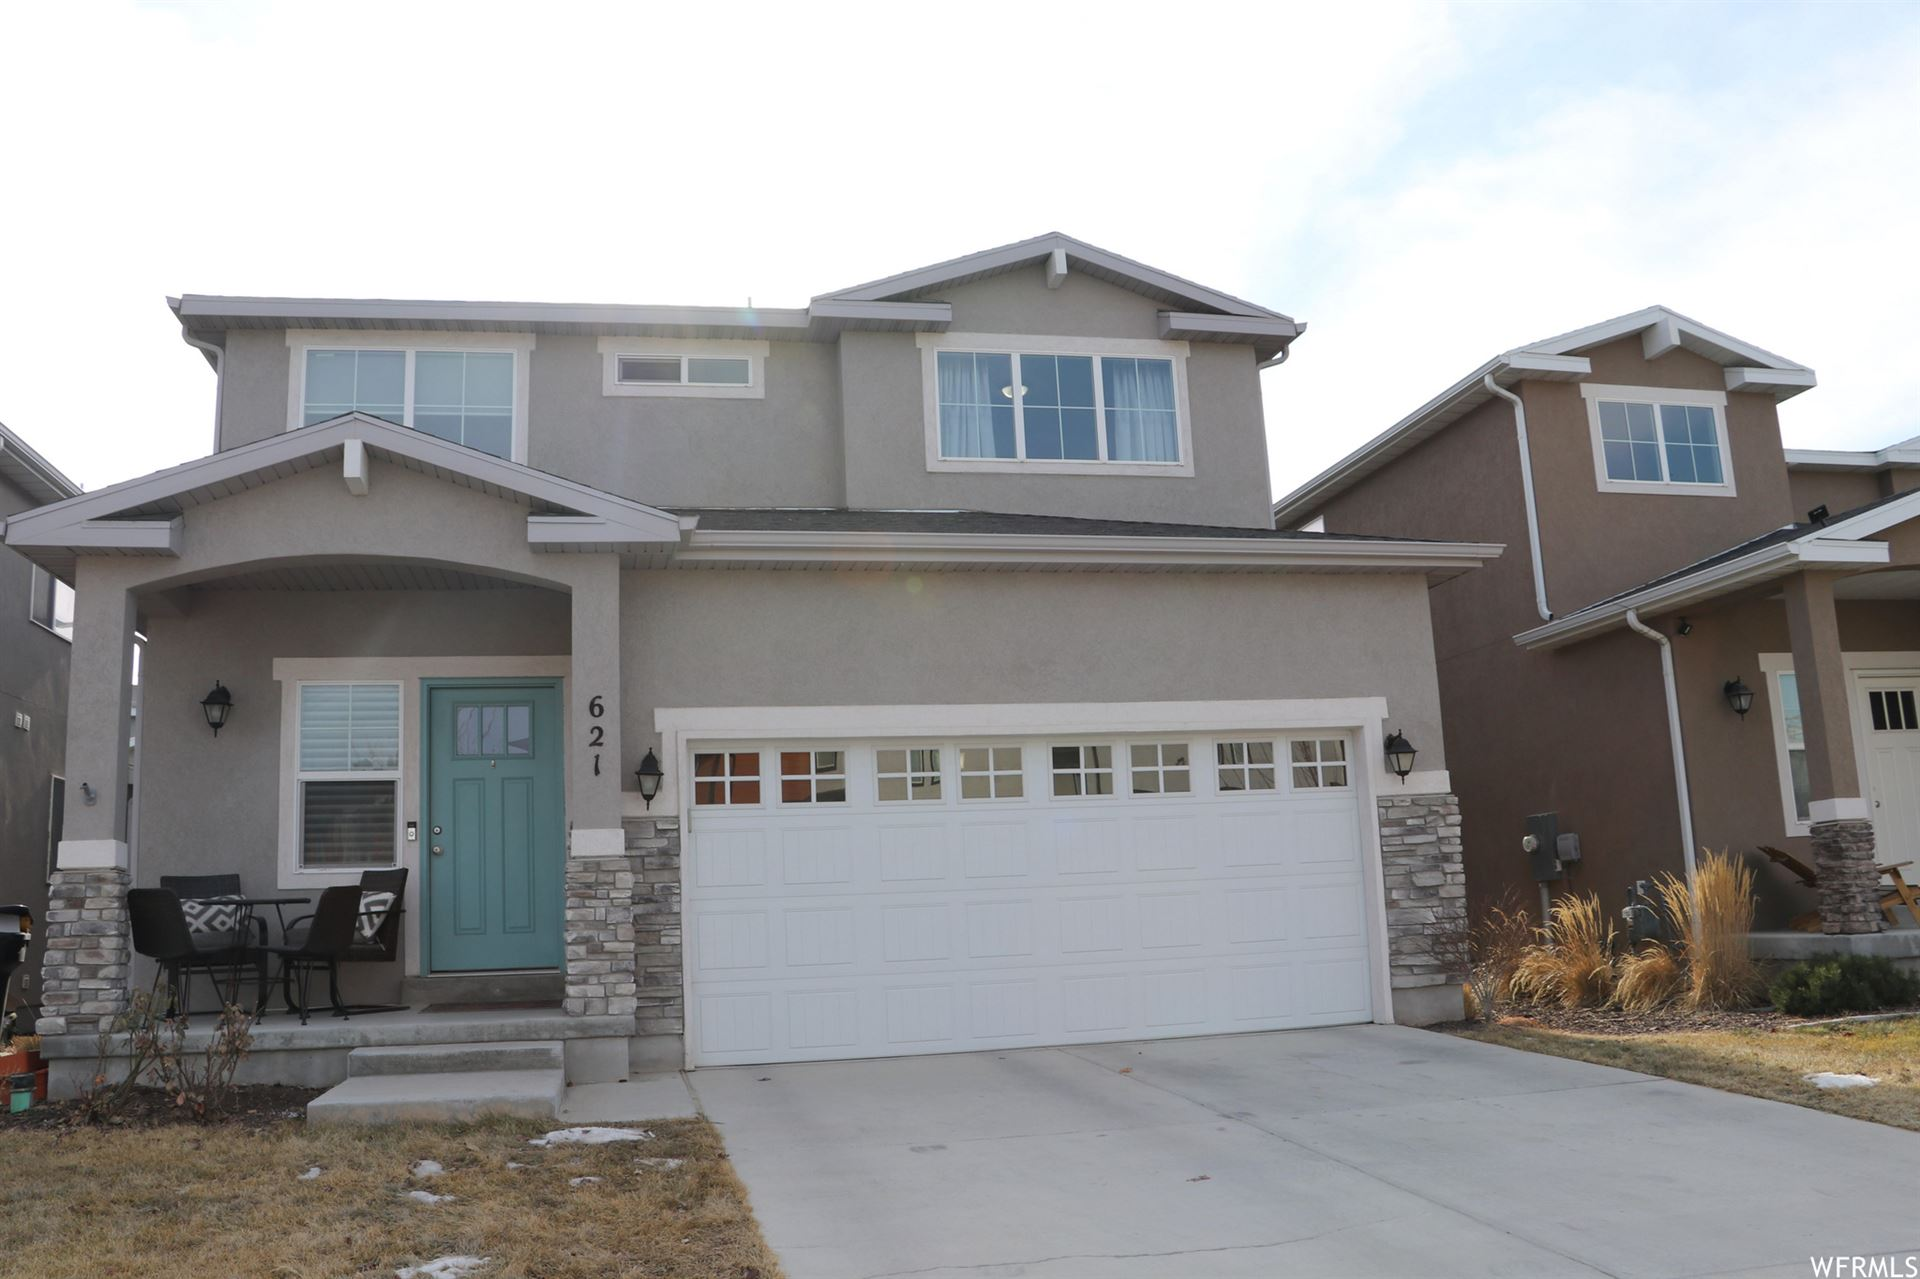 Photo of 621 W LIFE DR, Bluffdale, UT 84065 (MLS # 1719377)